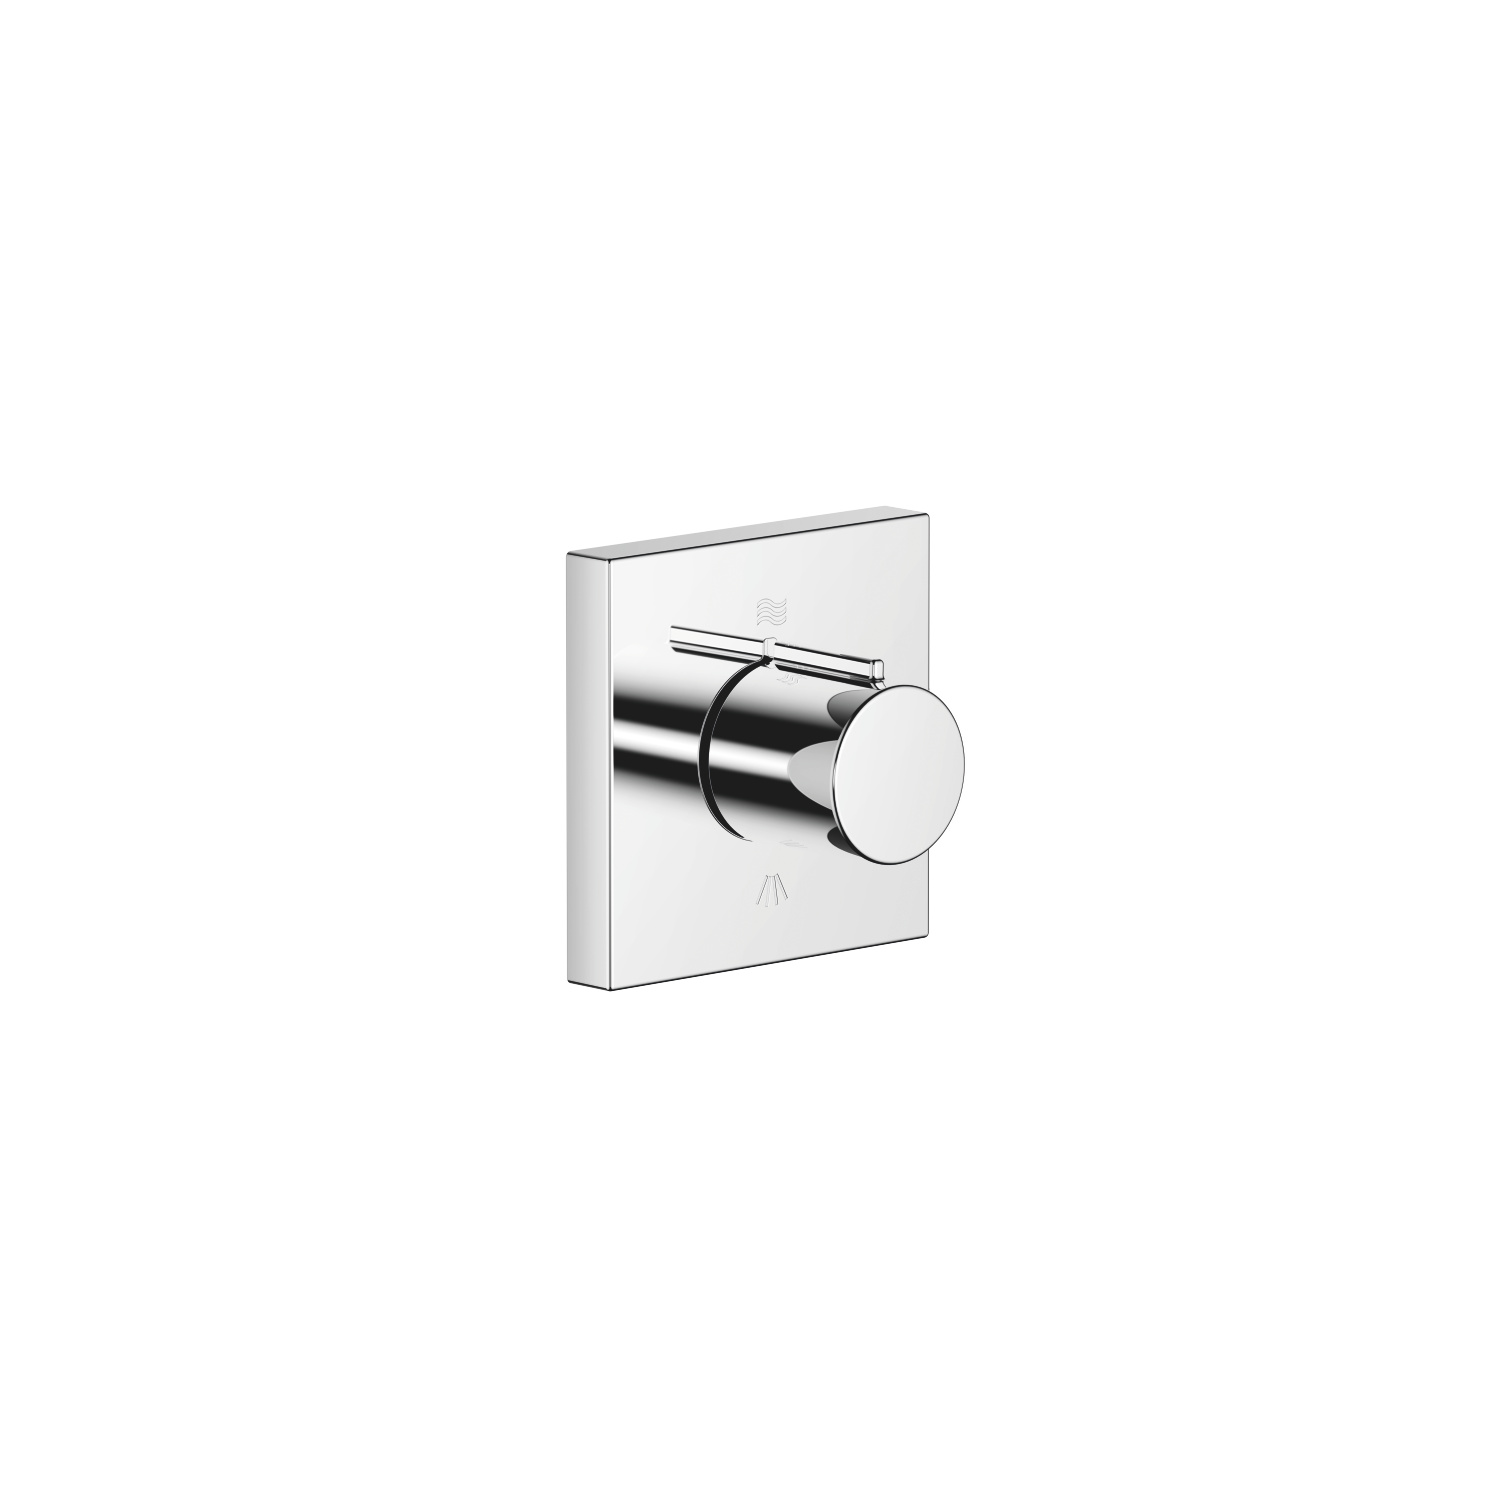 Concealed two-way diverter - polished chrome